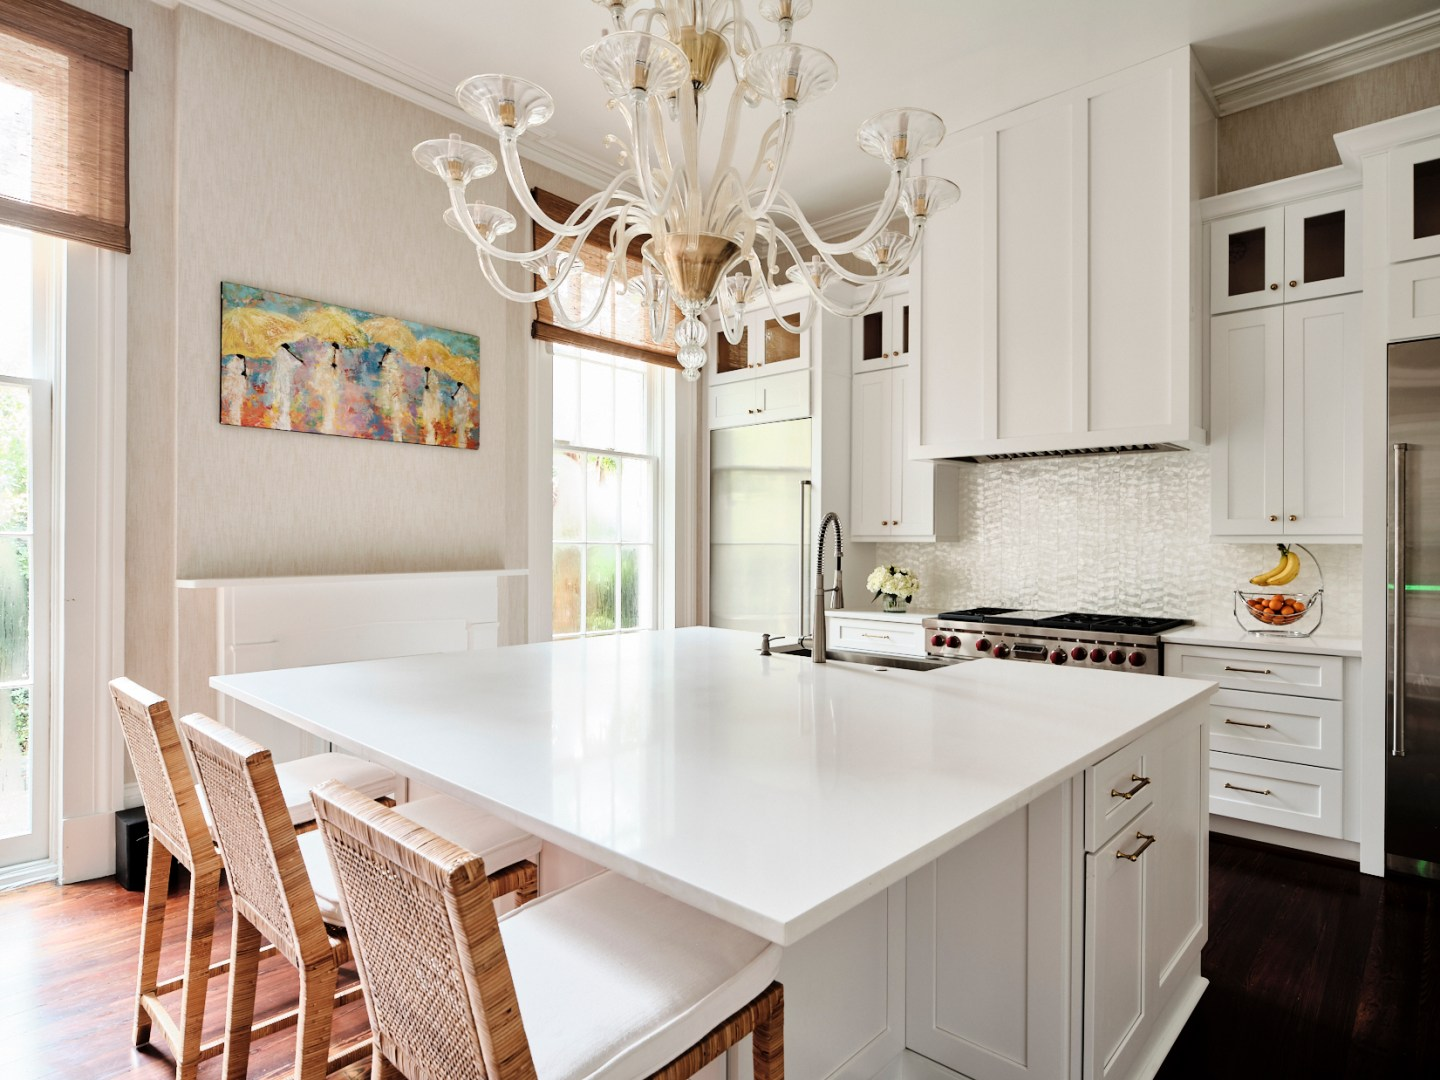 St_Charles_Finals_Web_Res-10 Tips To Consider When Remodeling a Kitchen from New Orleans Designer, April Vogt